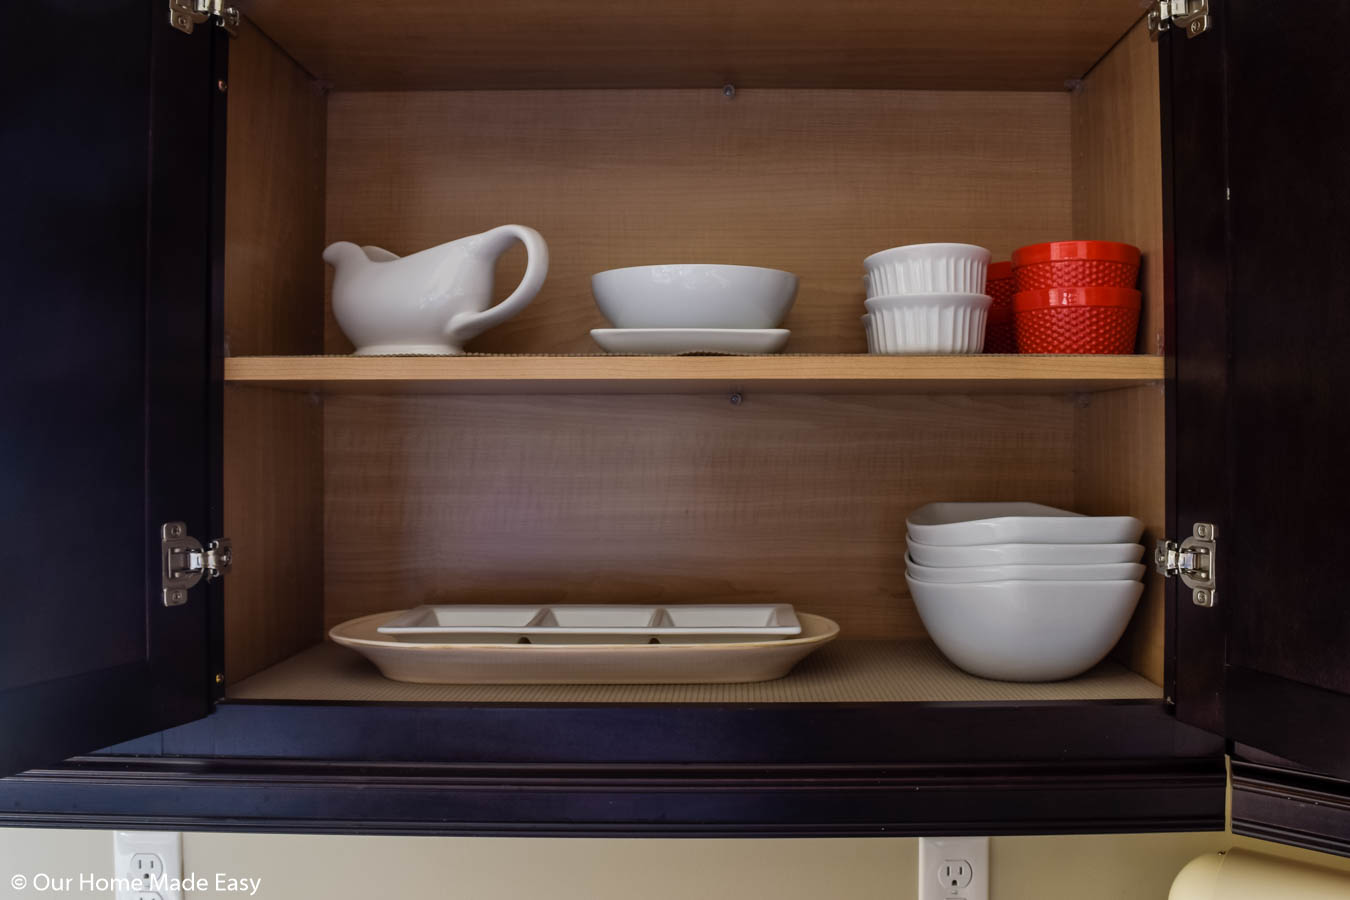 we moved the servingware closer to where we prepare food so we'd use it more often